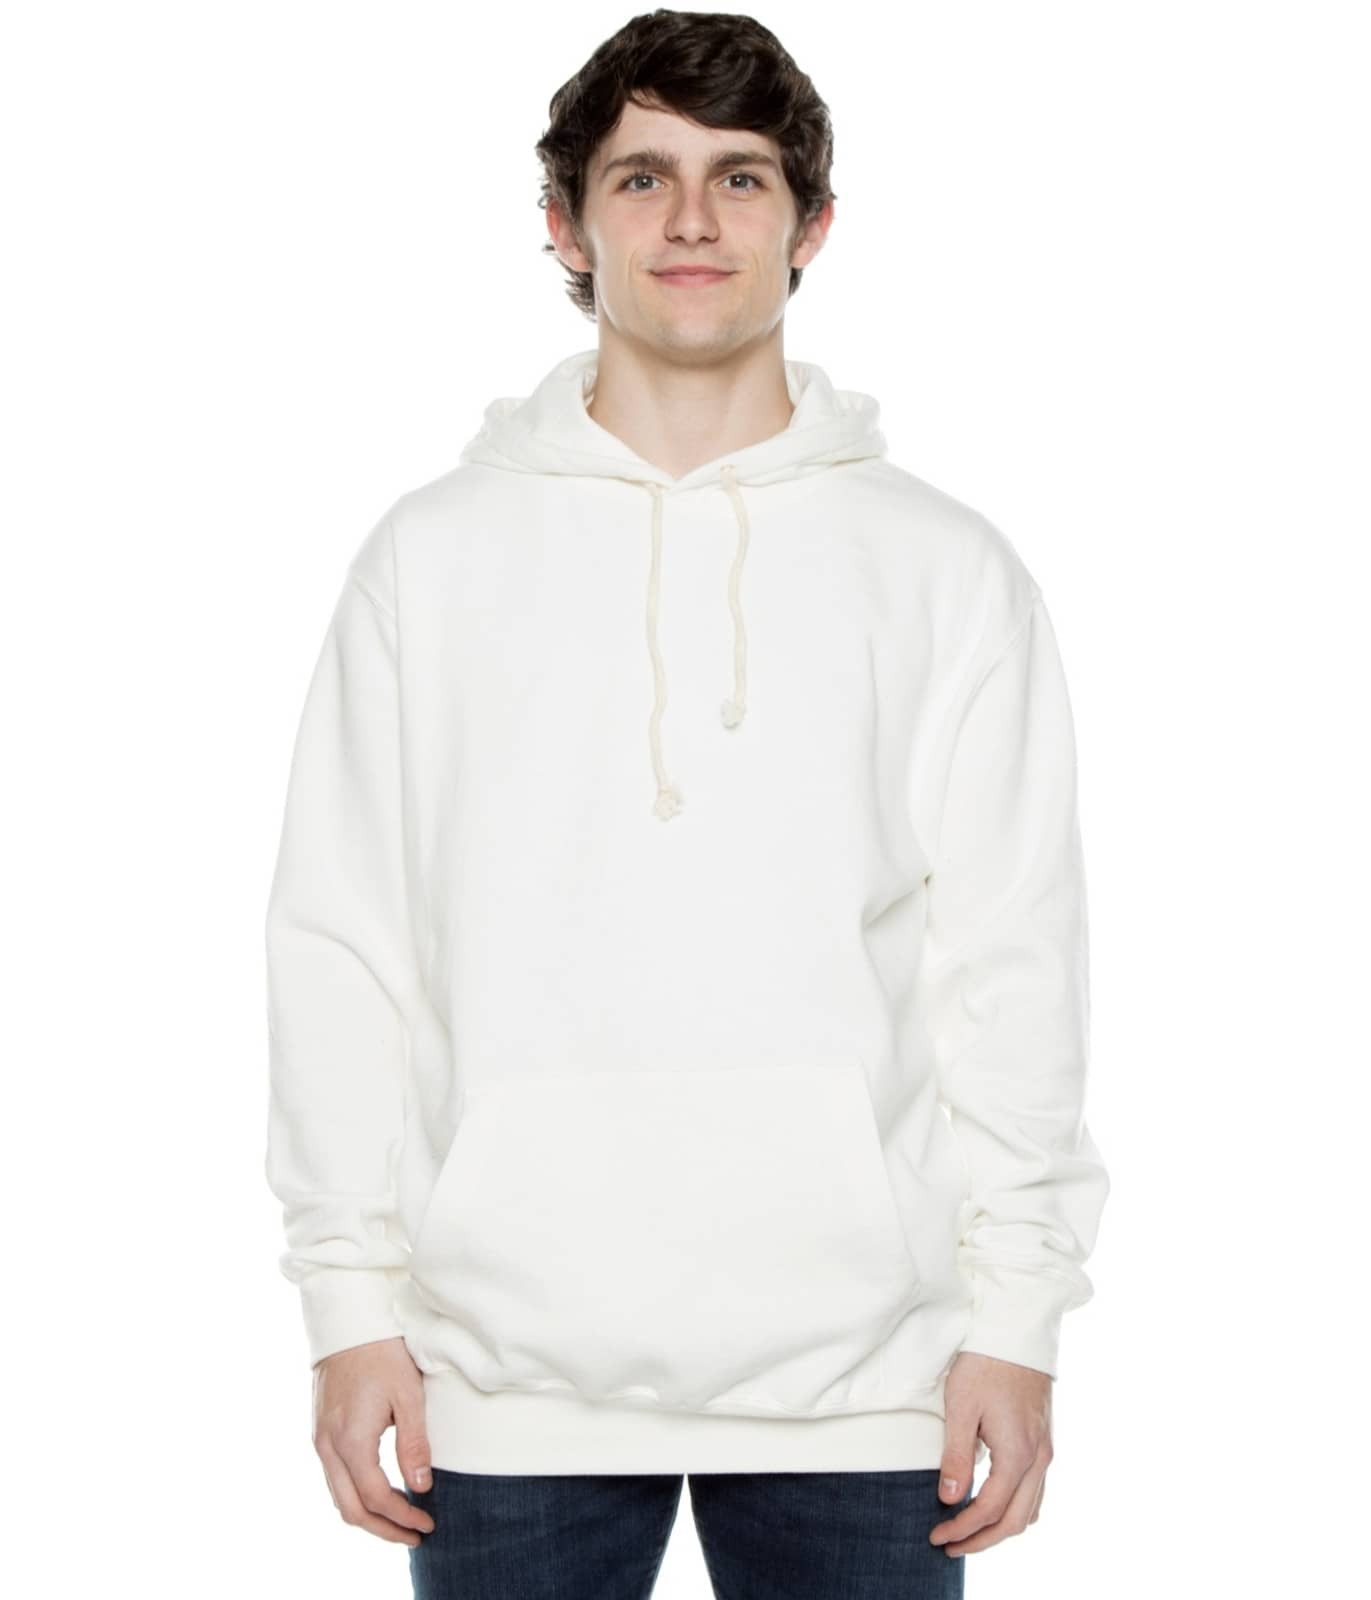 Prepared for Dye Basic Hoodie | 8.25 oz